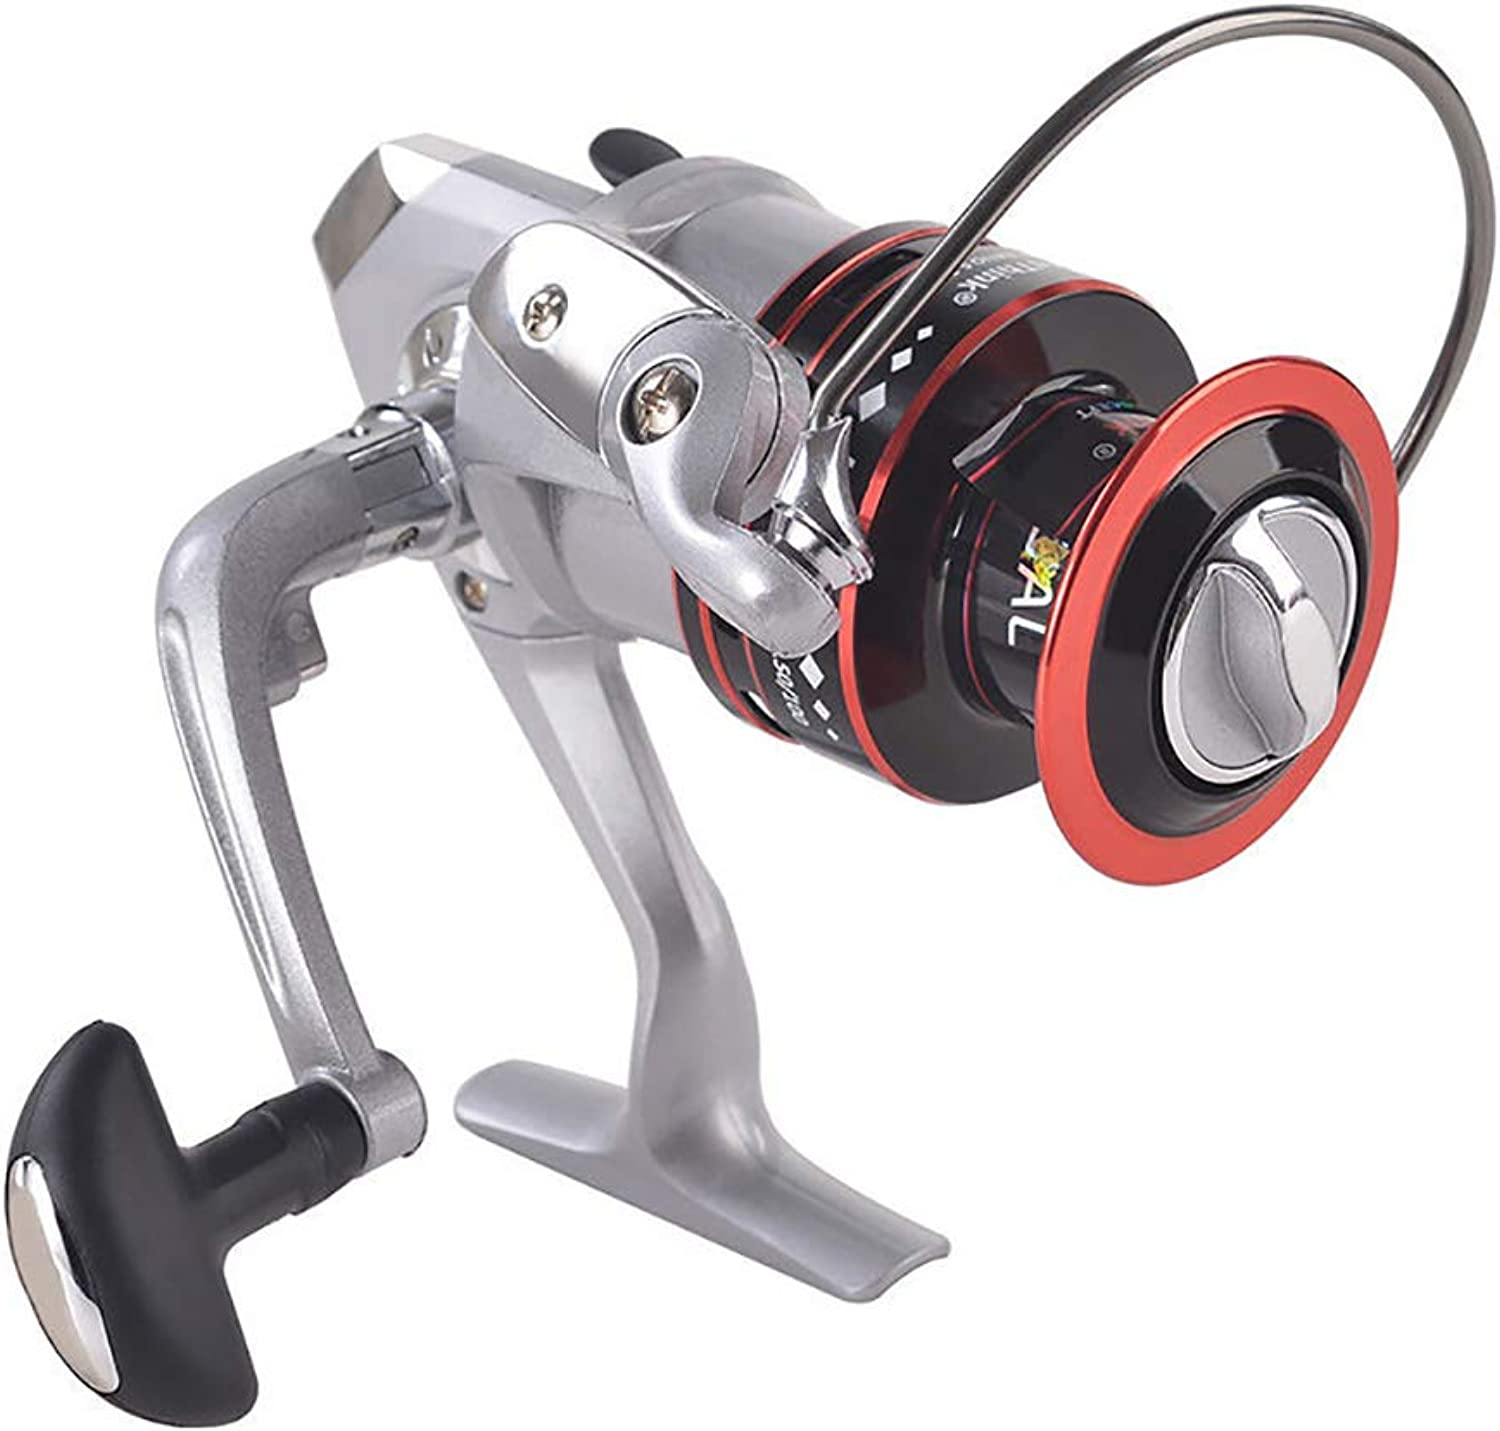 High Carbon Spinning Reel Smooth Wheel Axle Aviation Alloy Fishing Reels Outdoor Fishing Gear Sea Fishing Raft Fishing